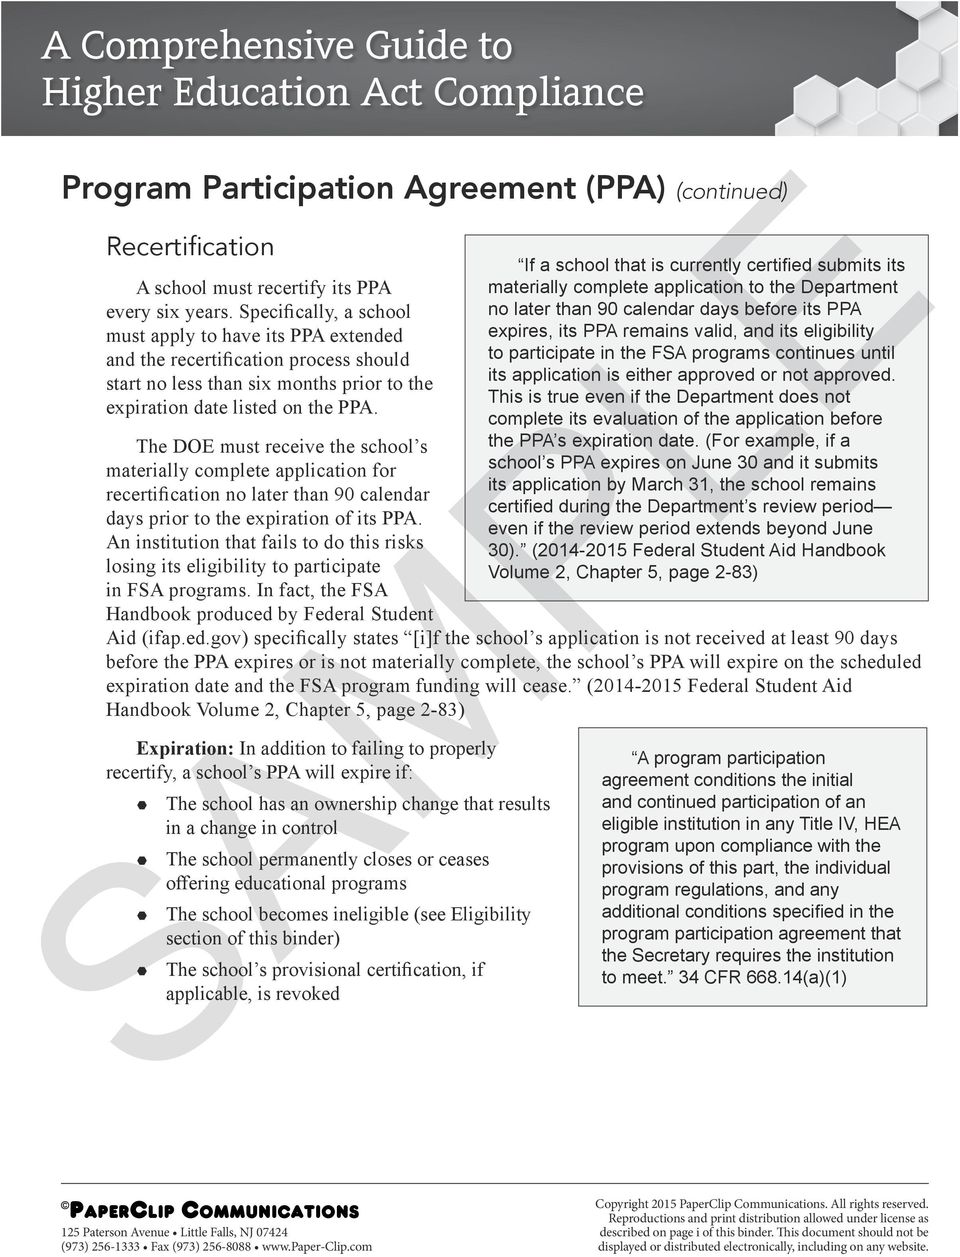 Specifically, a school no later than 90 calendar days before its PPA must apply to have its PPA extended expires, its PPA remains valid, and its eligibility and the recertification process should to